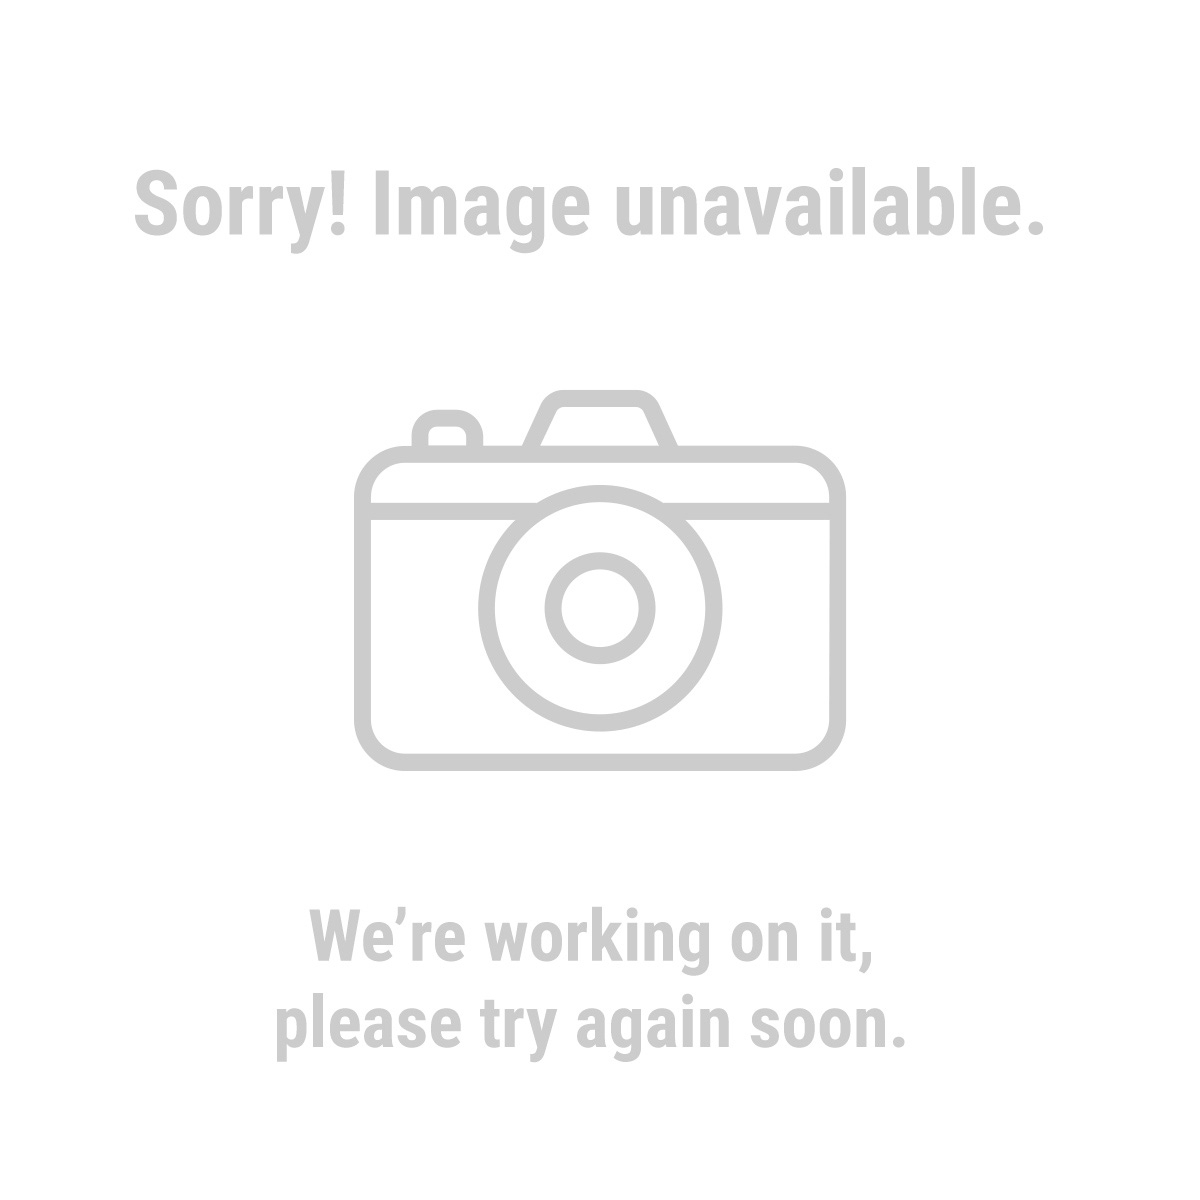 Badland Winches 61605 5000 lb. ATV/Utility Electric Winch with Automatic Load-Holding Brake